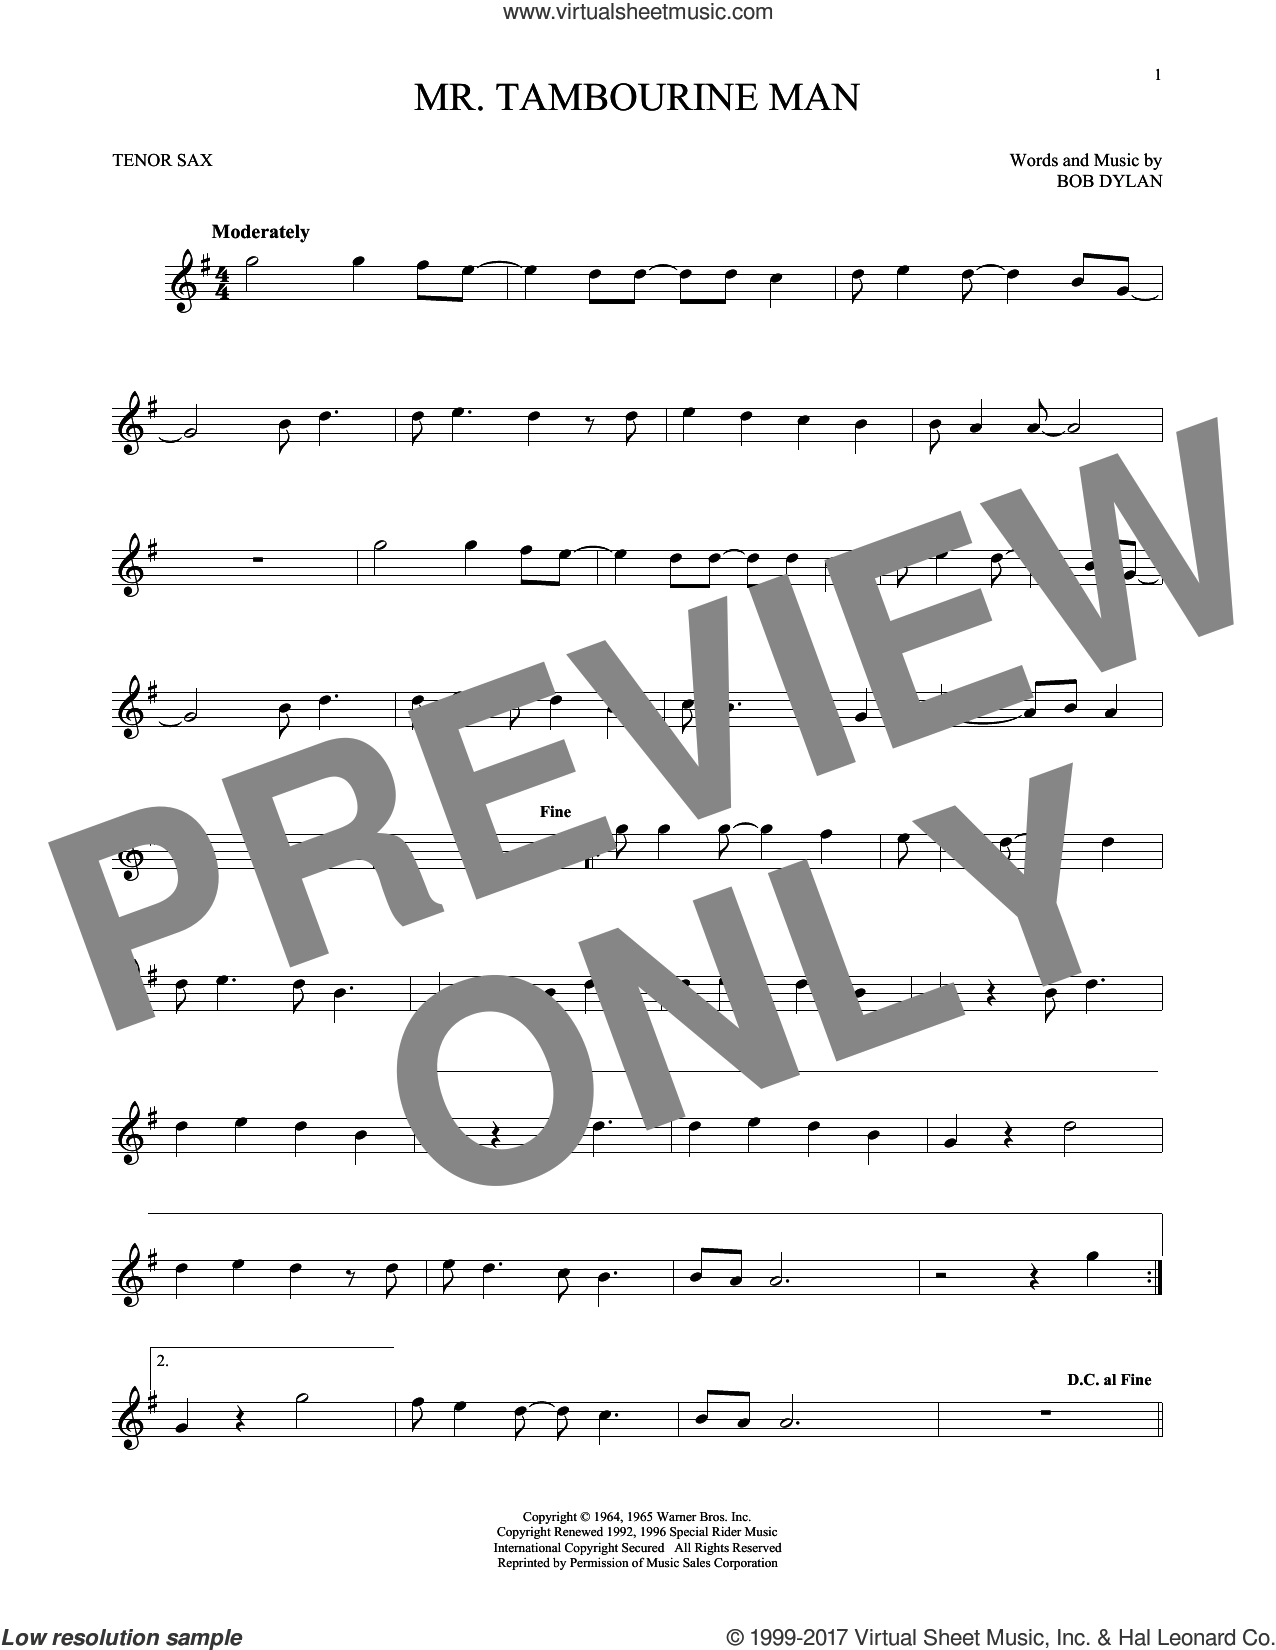 Mr. Tambourine Man sheet music for tenor saxophone solo by Bob Dylan, intermediate skill level